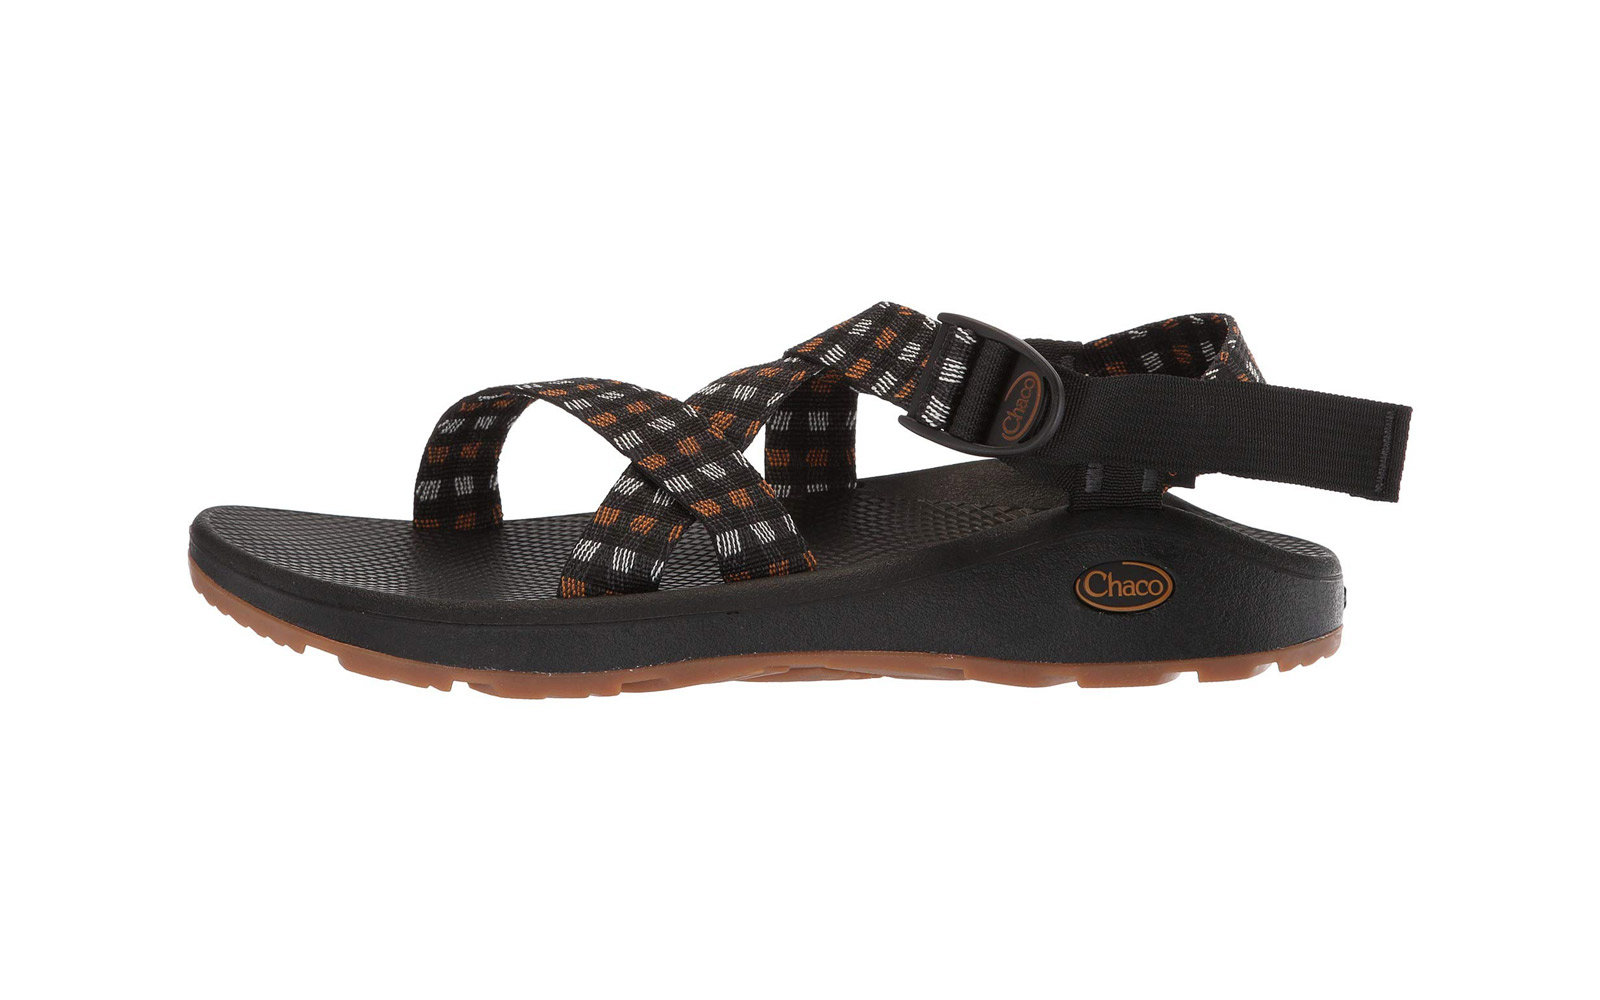 51ceaad8036d7a The Best Men s Sandals to Pack for Your Next Vacation